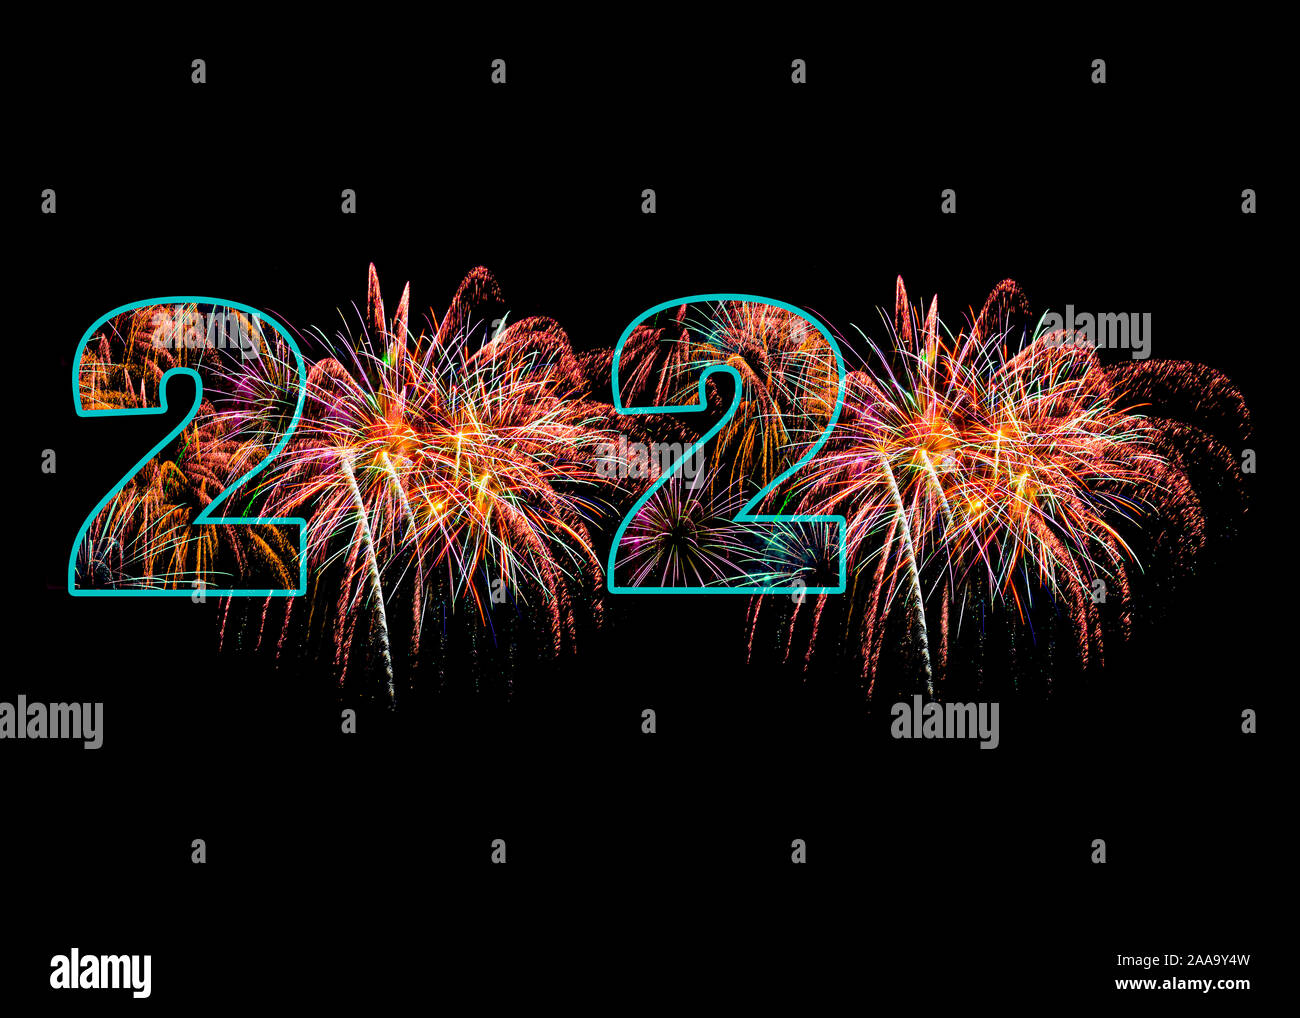 2020-in-multicolored-pastel-fireworks-happy-new-years-eve-background-for-party-invitation-greeting-card-banner-poster-2AA9Y4W.jpg